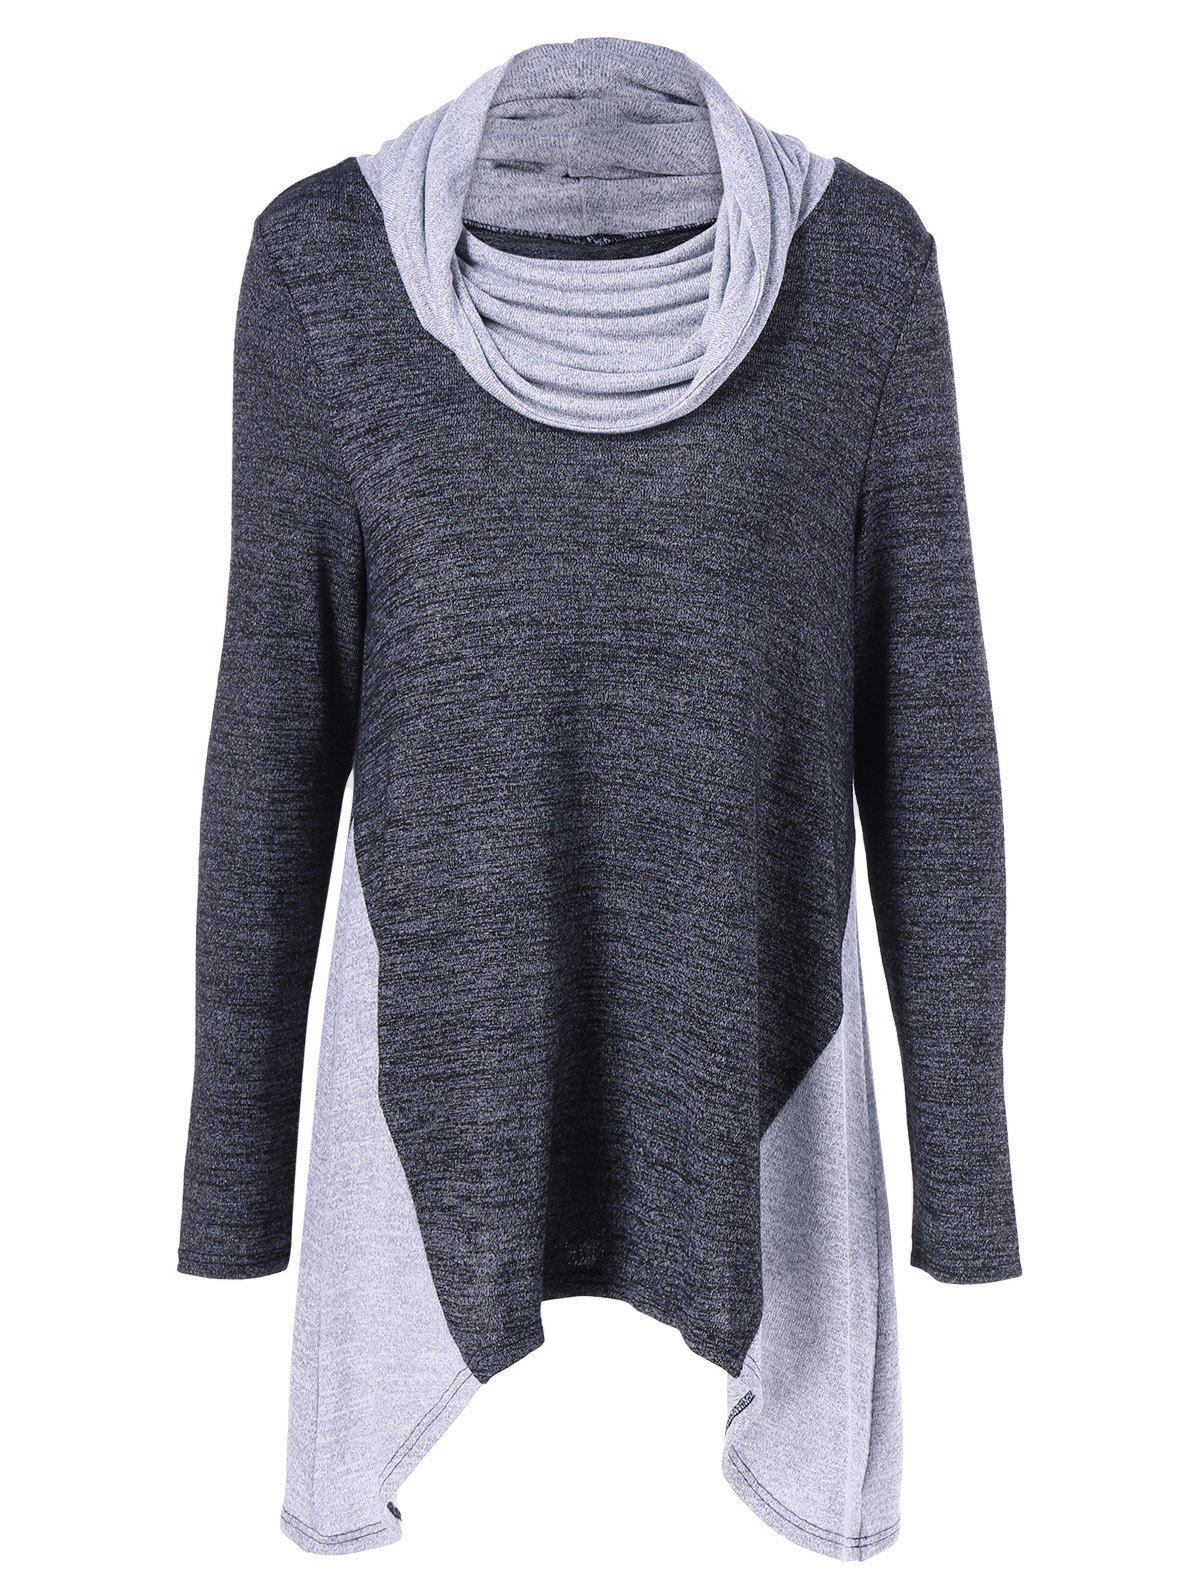 Hot Cowl Neck Asymmetrical Knitwear